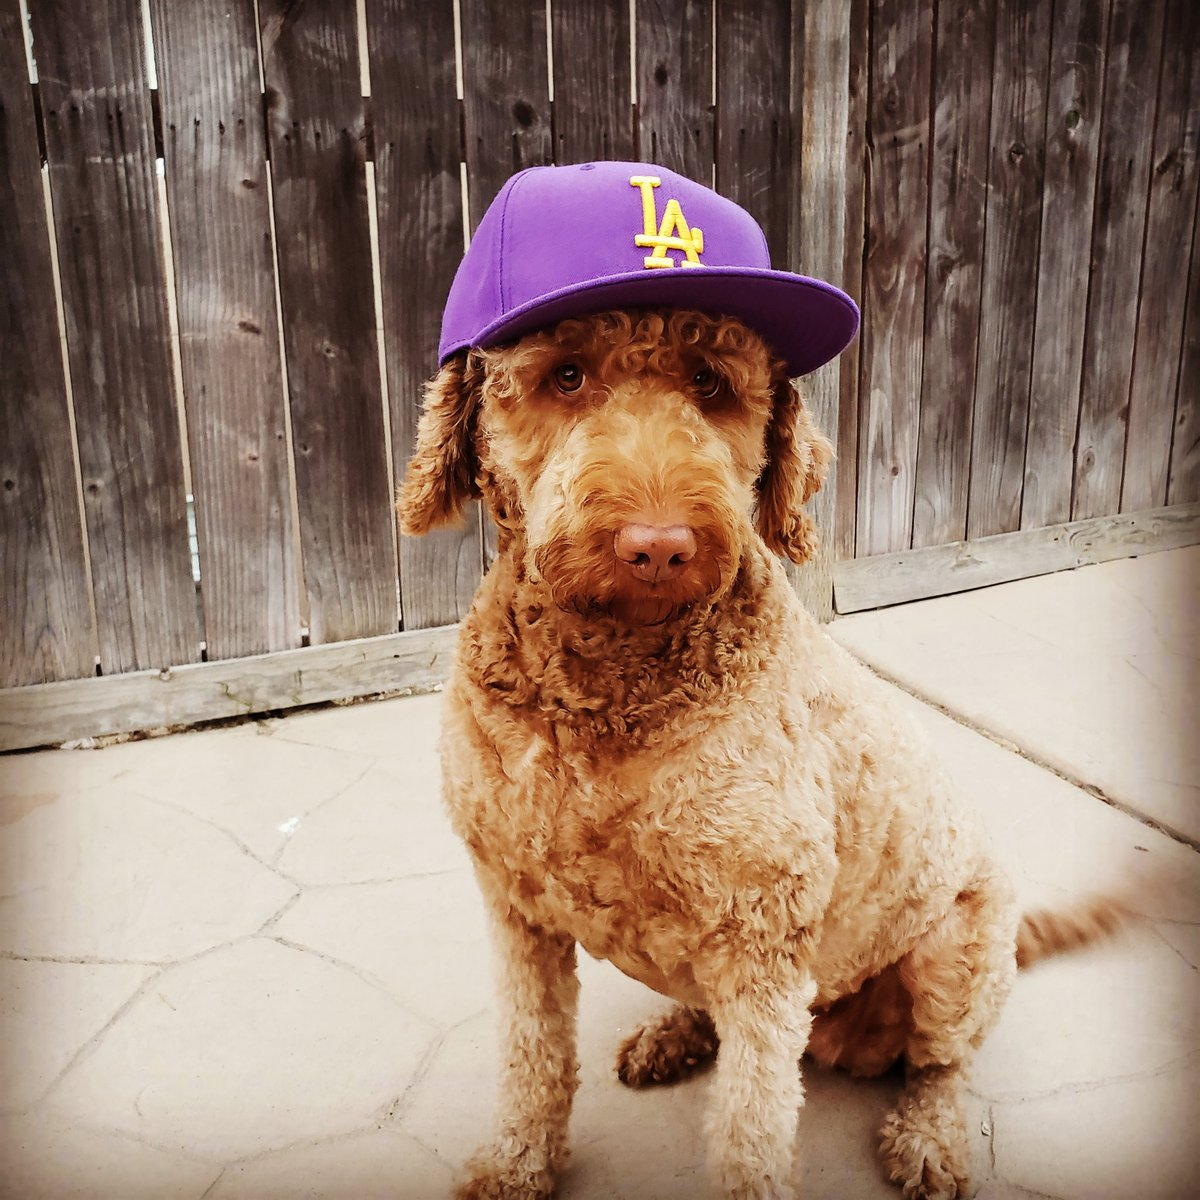 @Lakers @JeanieBuss Our girl Charlotte, repping the Purple N Gold. #LakersFamily #LAKERS4LIFE